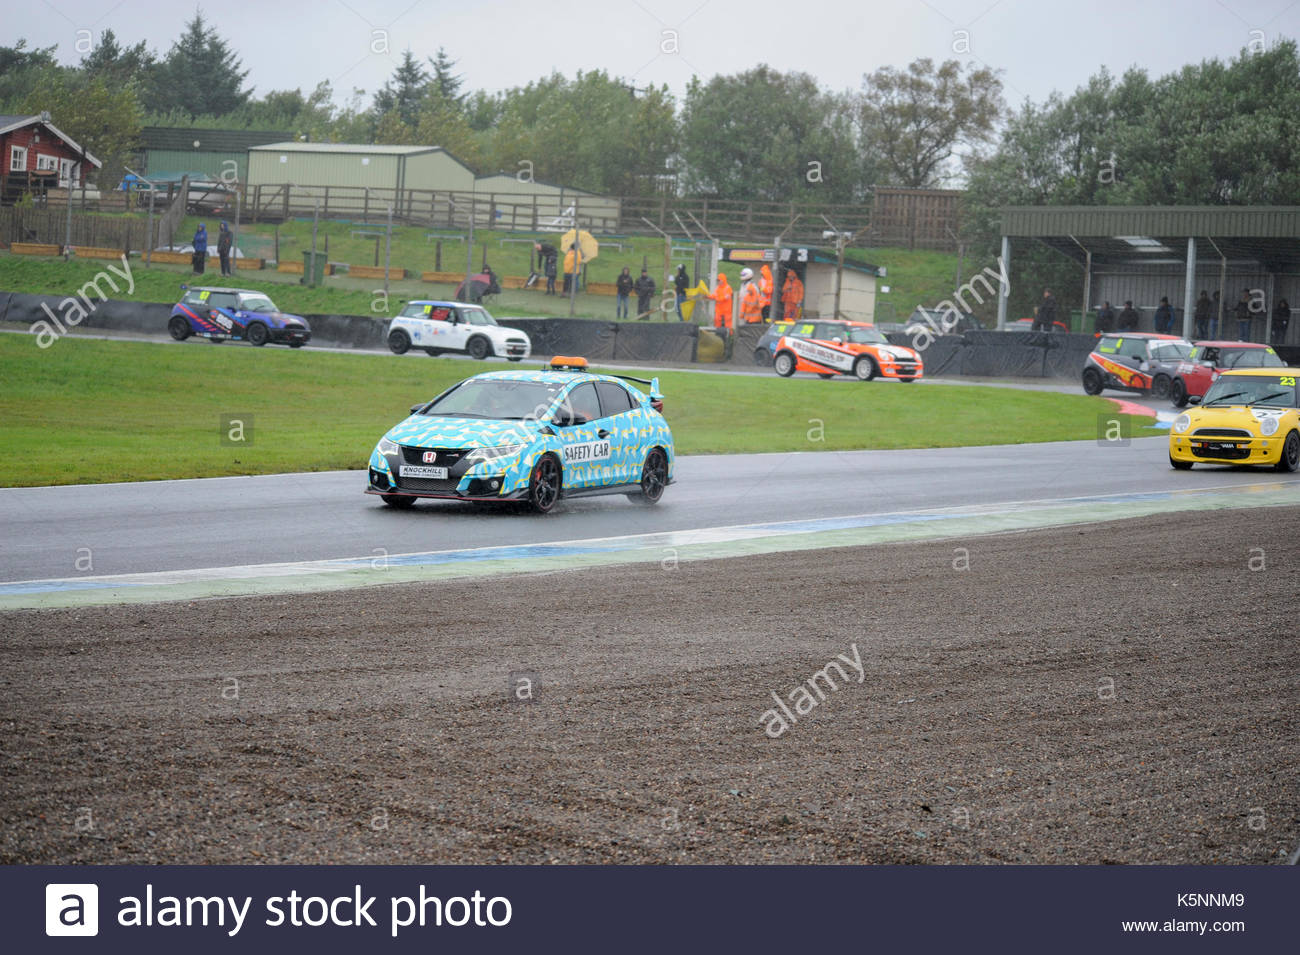 Safety car lap during a celtic speed mini cooper cup race to remove number 16 from the tyre wall at the penultimate round of the scottish championship